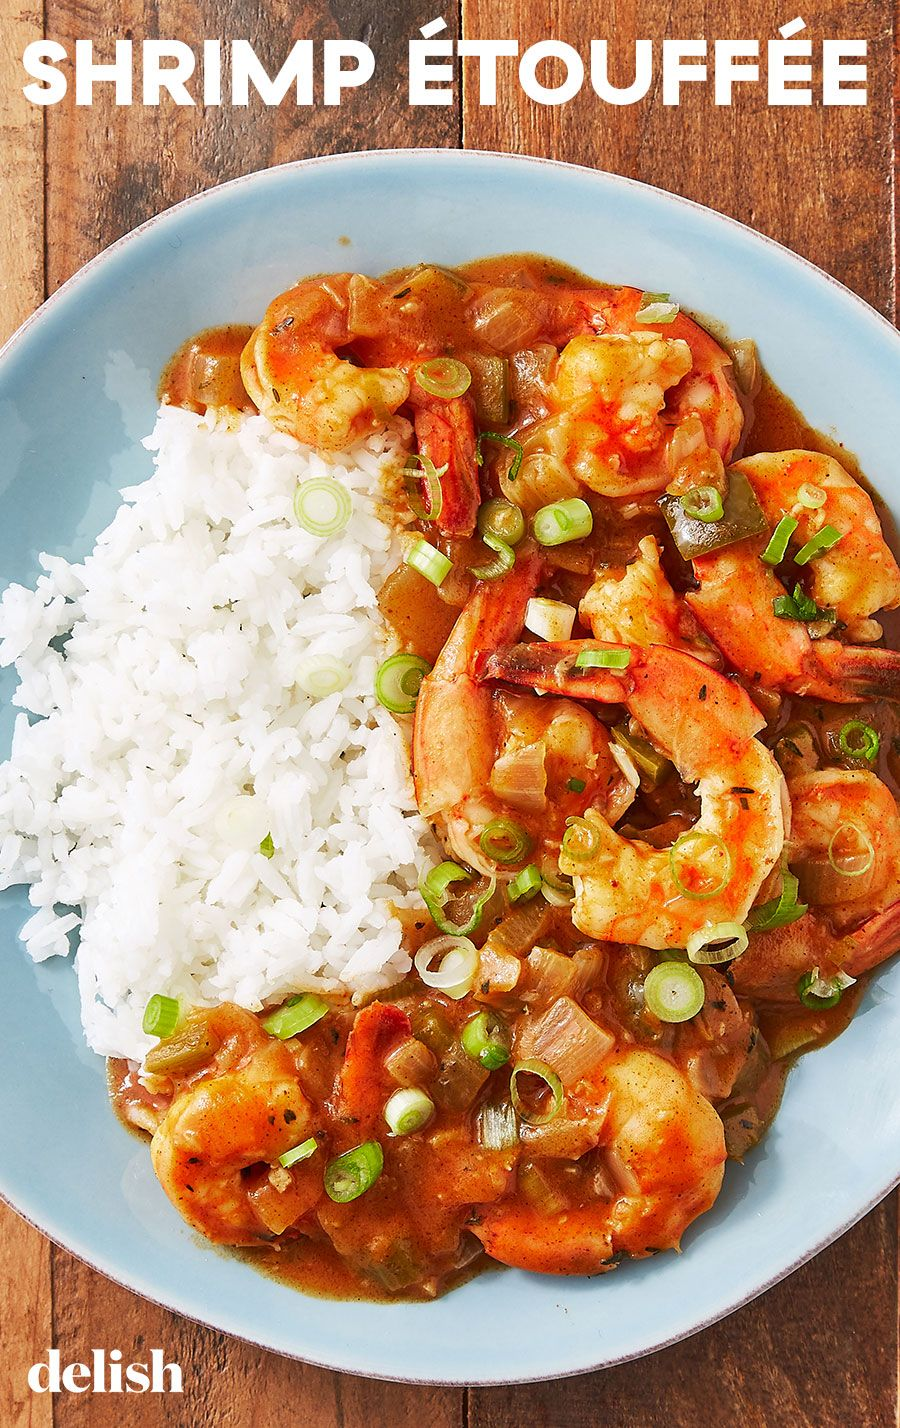 Shrimp Etouffee Our New Favorite Way To Cook Shrimp Recipe Etouffee Recipe Shrimp Dishes Louisiana Recipes